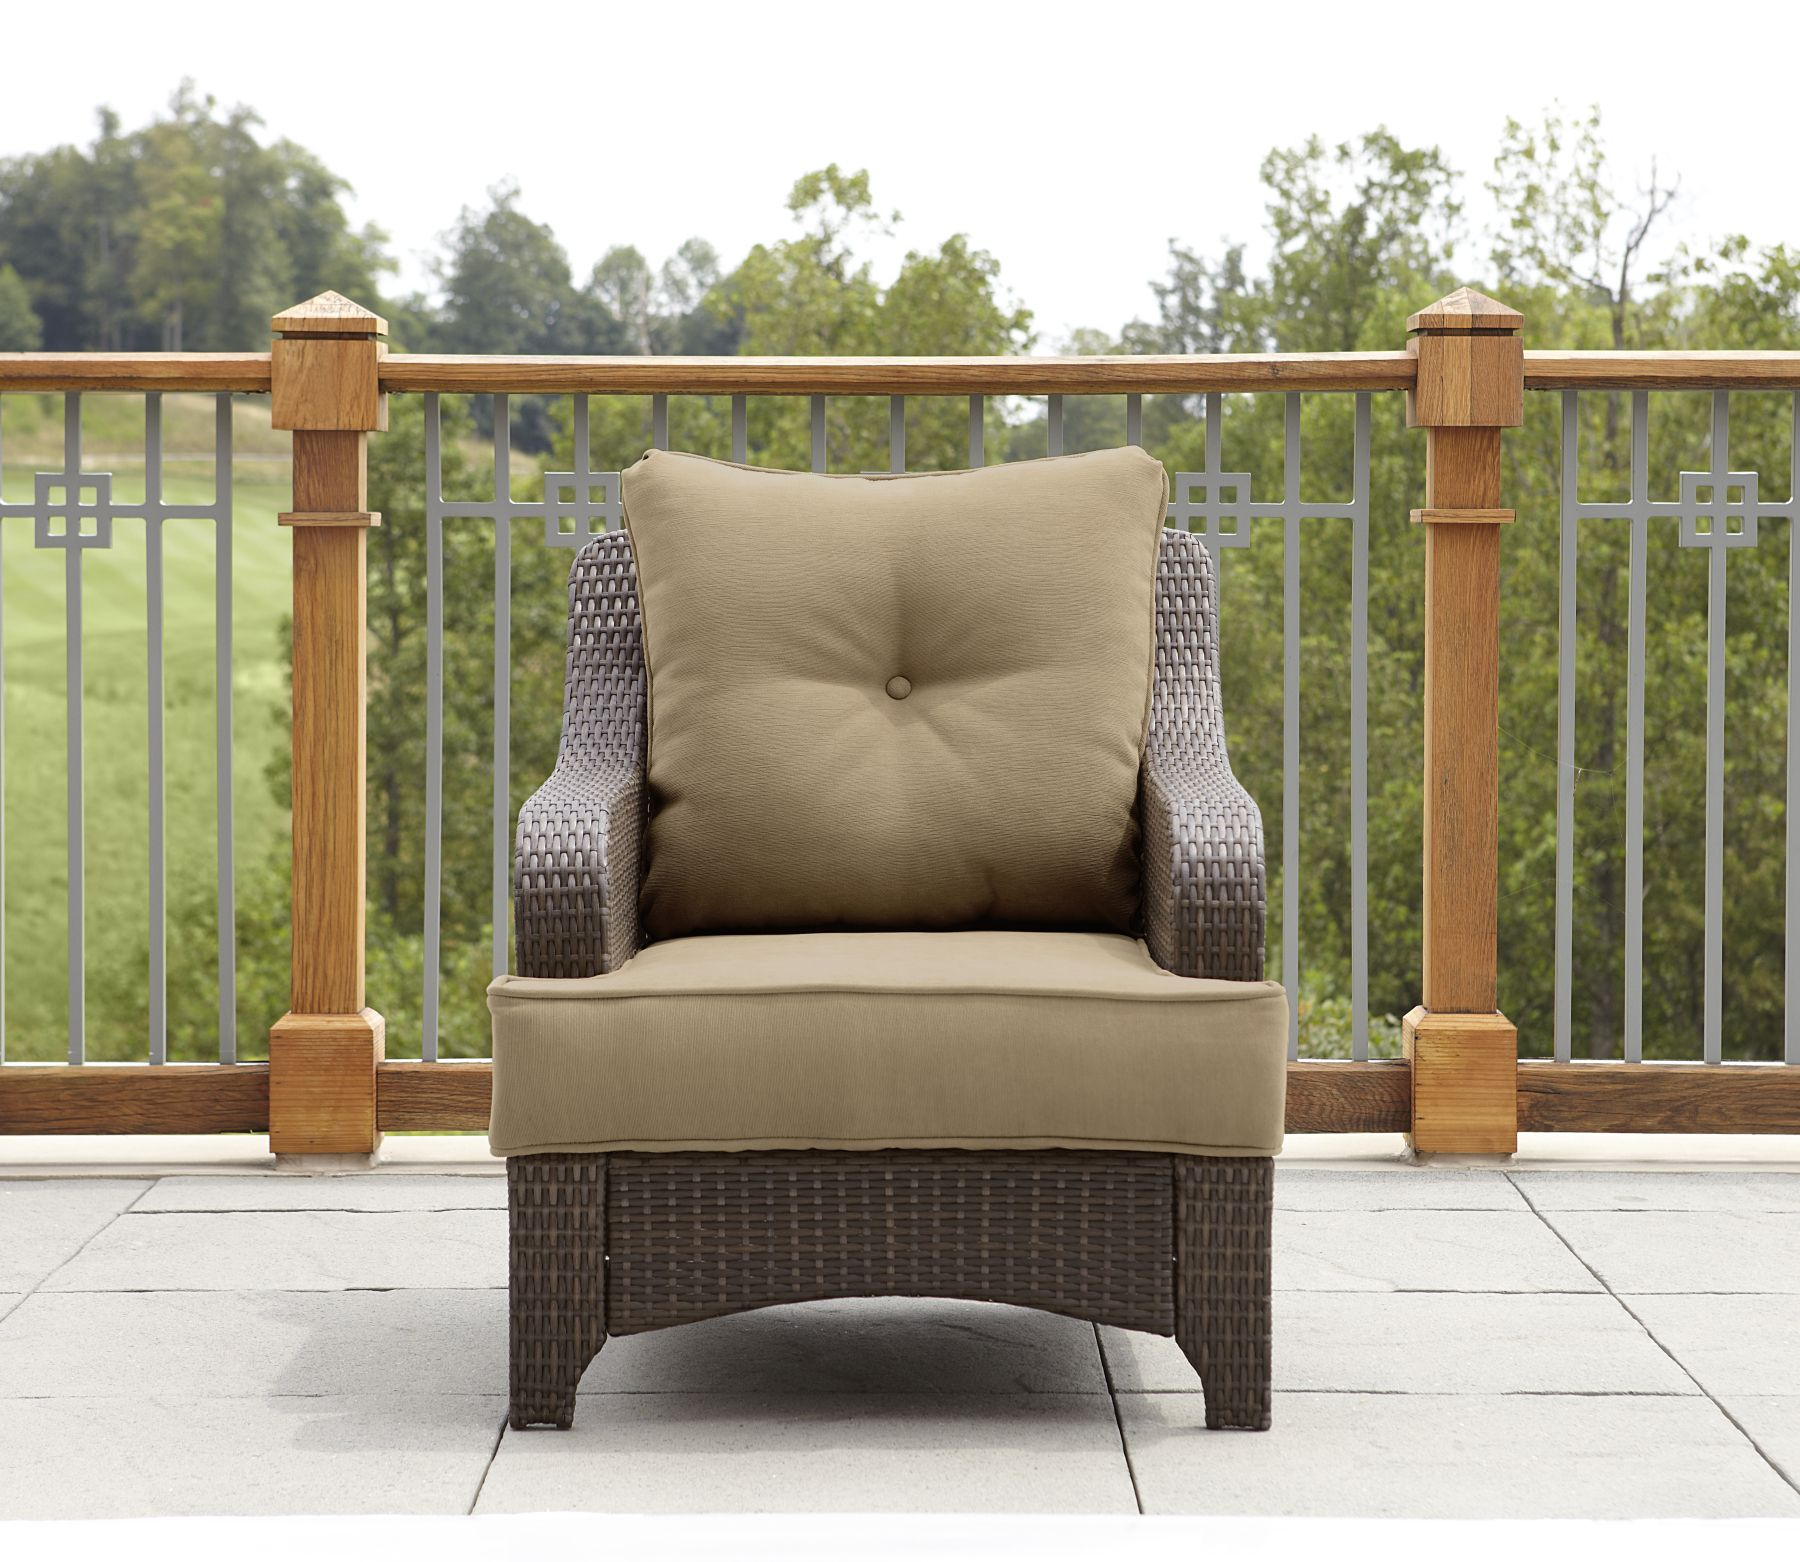 La-Z-Boy Outdoor Benjamin 4pc Seating Set*